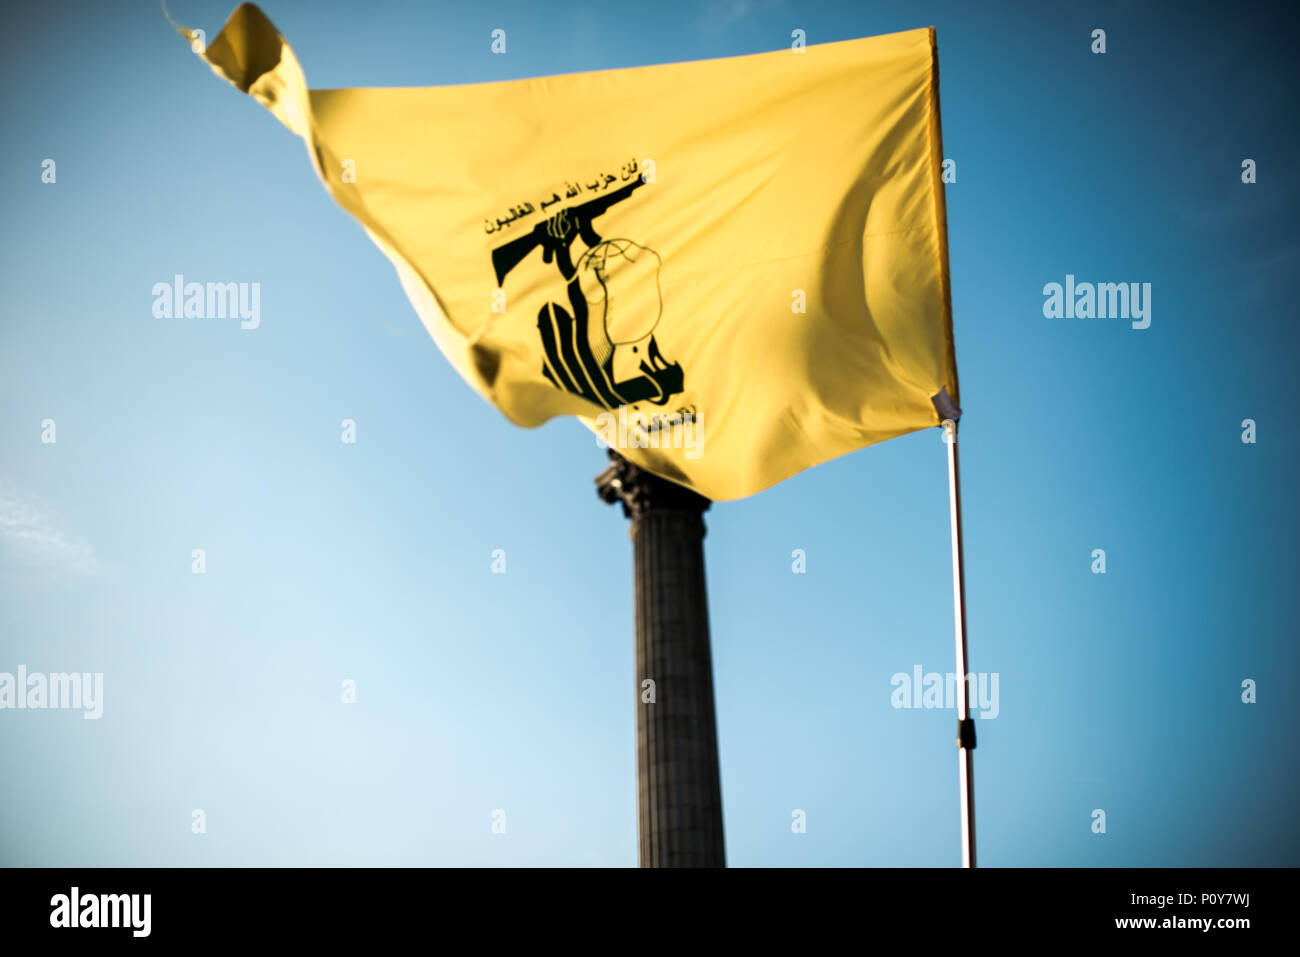 London, UK. 10th June, 2018. A Hezbollah flag seen in Trafalgar Square during the demonstration.Hundreds of anti-Israel protesters marched through the streets on the annual Al Quds Day. Started by the Ayatollah Khomeini in 1979 to show support for Palestine and oppose the existence of Israel and the counter protest from the Zionist Federation. Credit: Brais G. Rouco/SOPA Images/ZUMA Wire/Alamy Live News - Stock Image